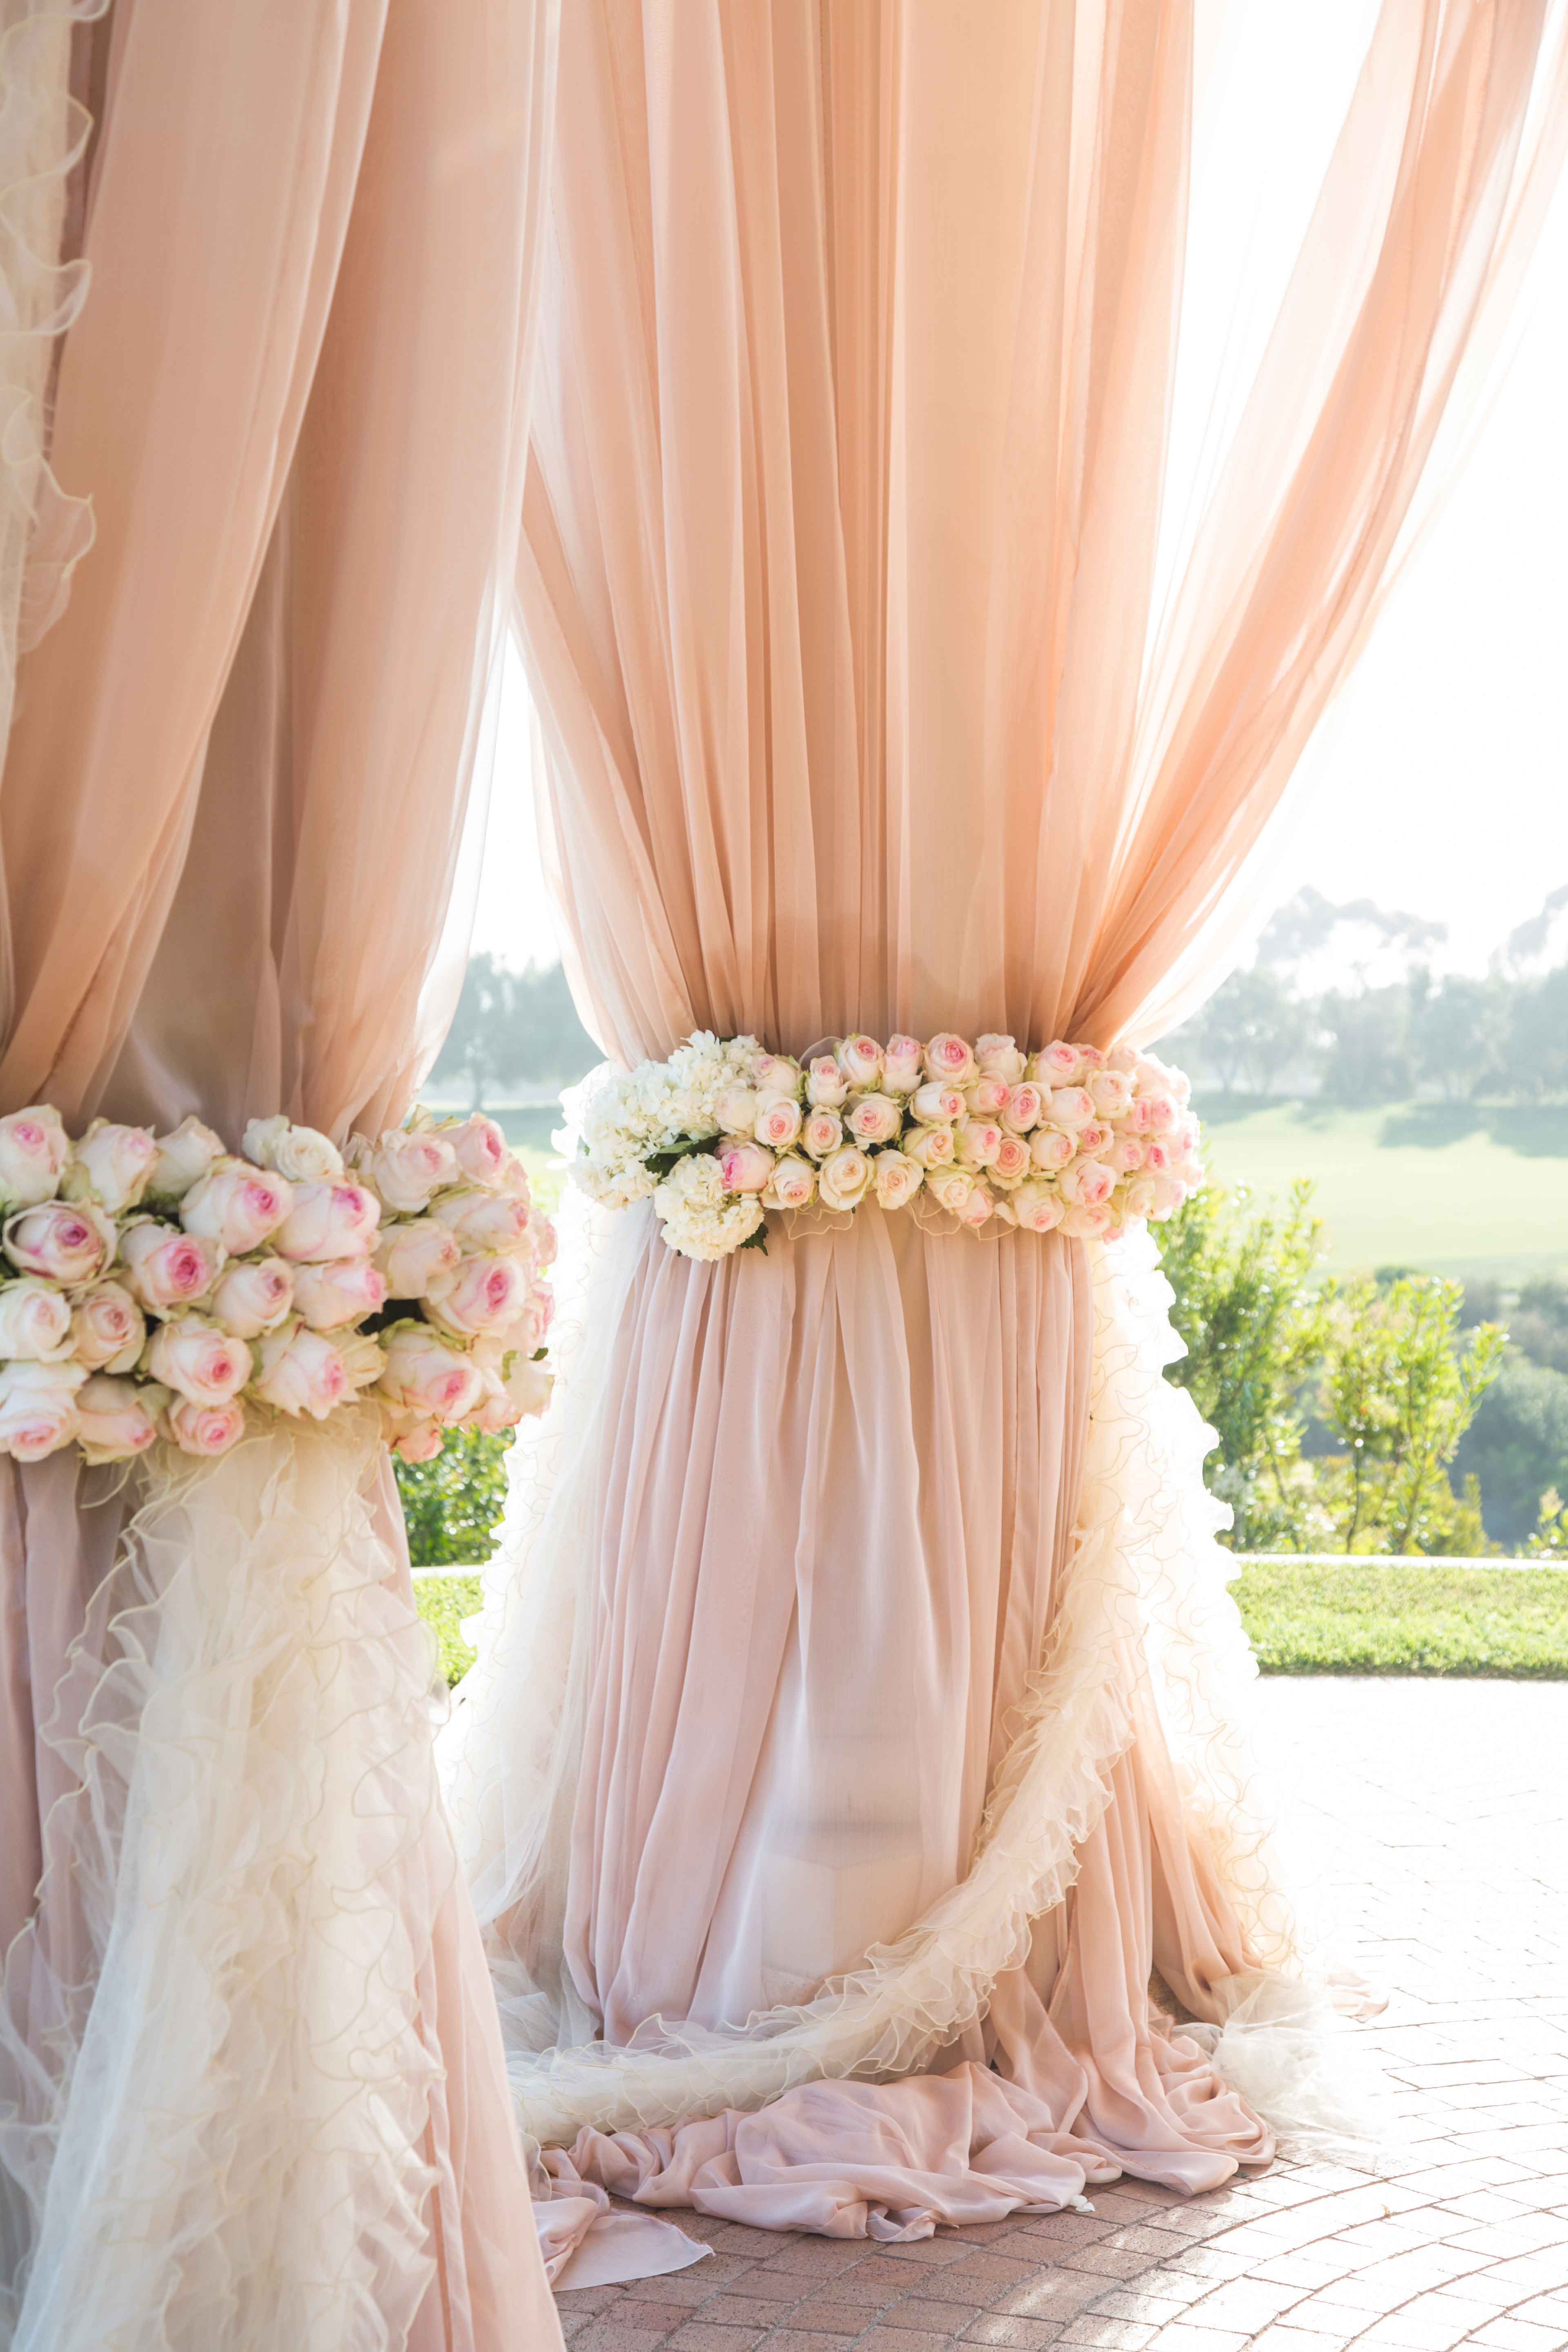 Pink drapery at outdoor wedding ceremony chuppah with ruffle ribbon